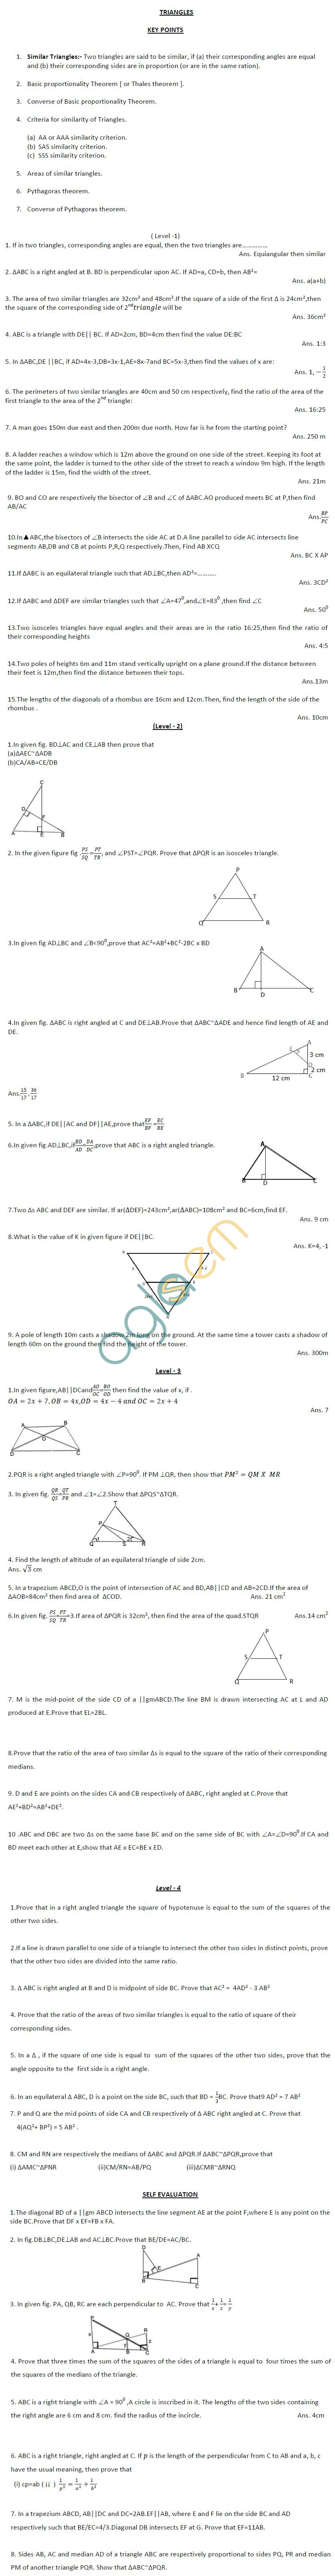 CBSE Class X: Maths - Triangles